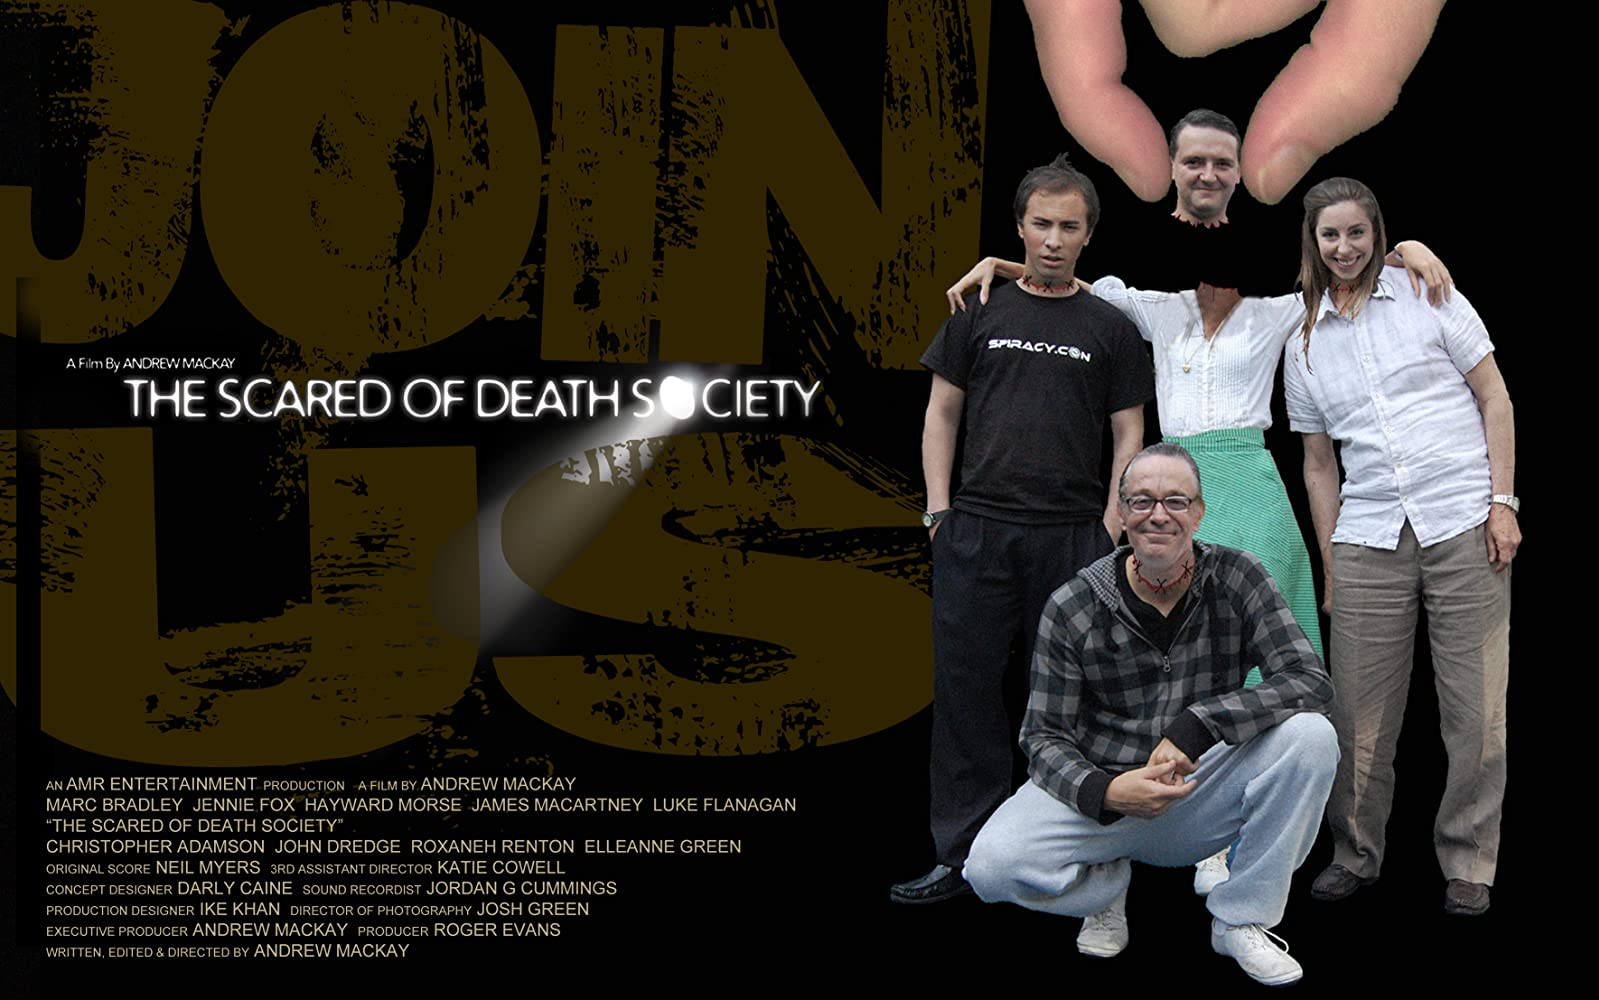 The Scared of Death Society (2010)